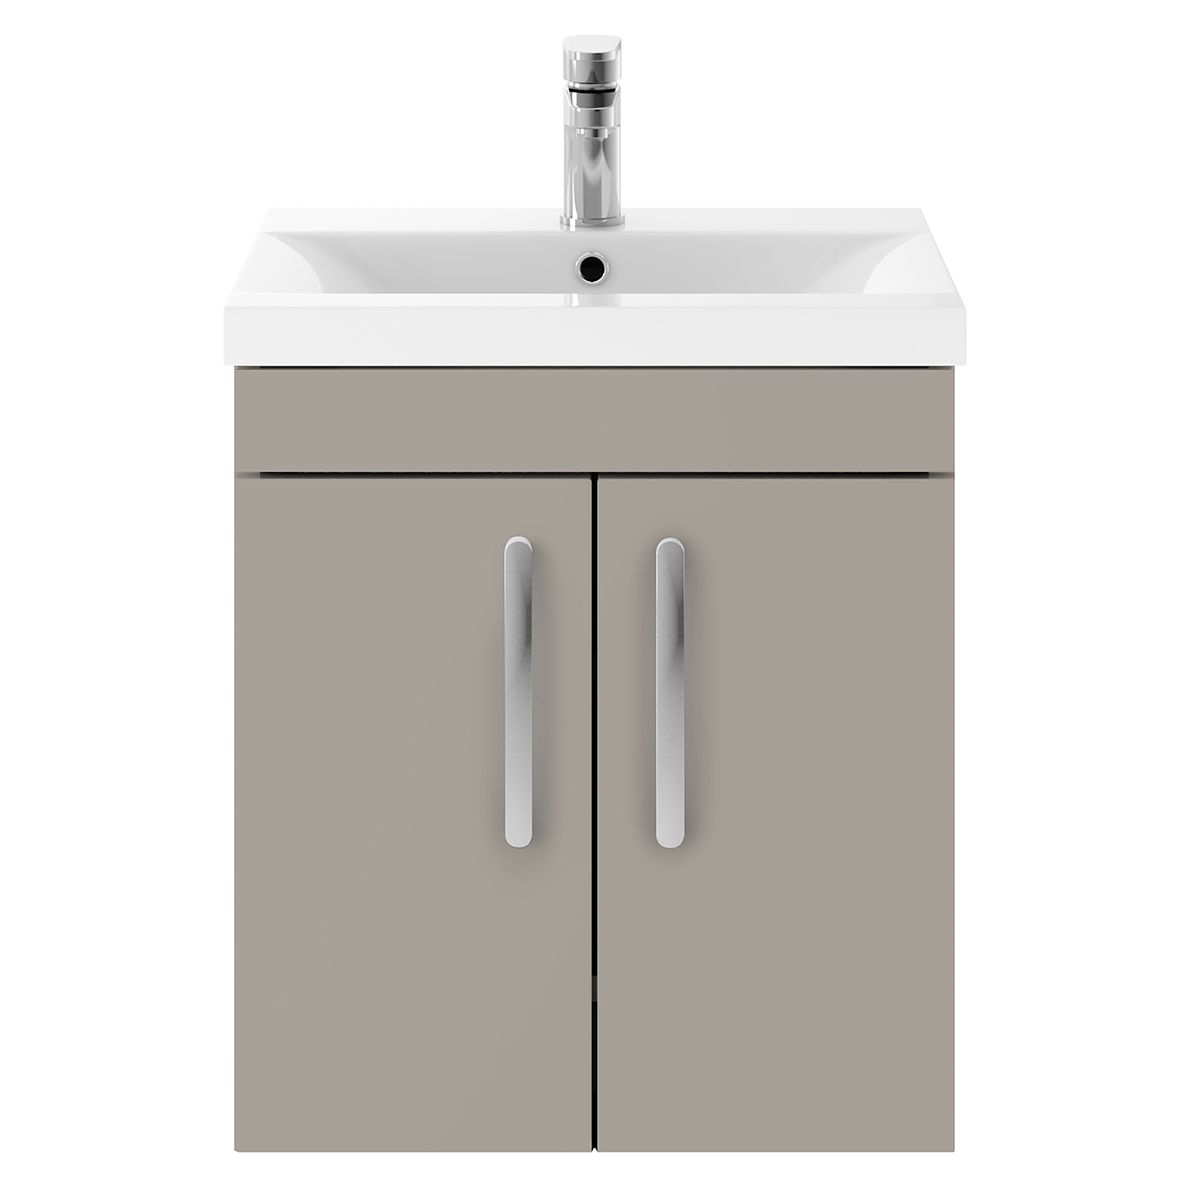 Nuie Athena Stone Grey 2 Door Wall Hung Unit 500mm with Mid Edge Basin